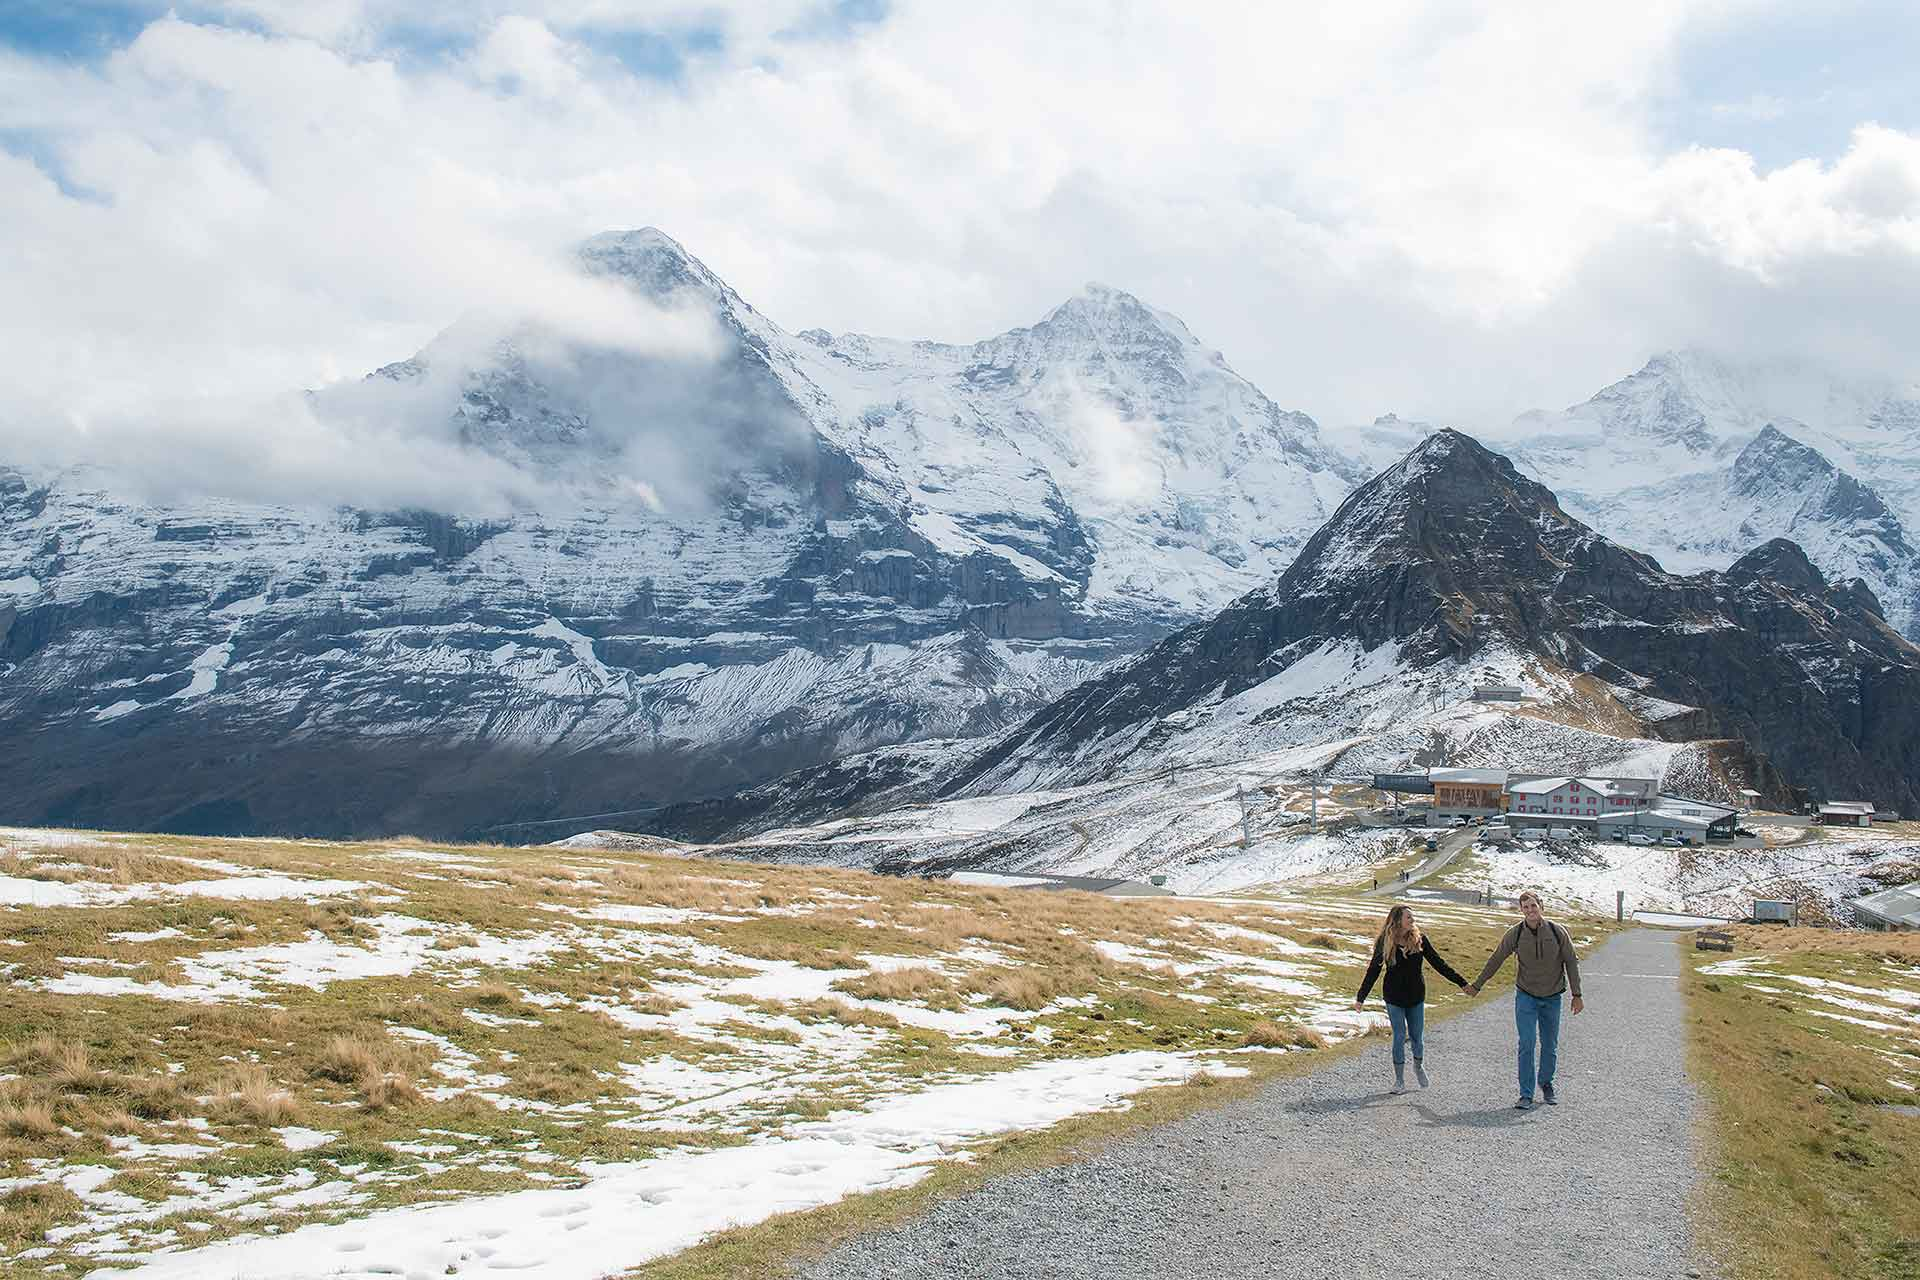 Engagement photo shoot in the Swiss Alps